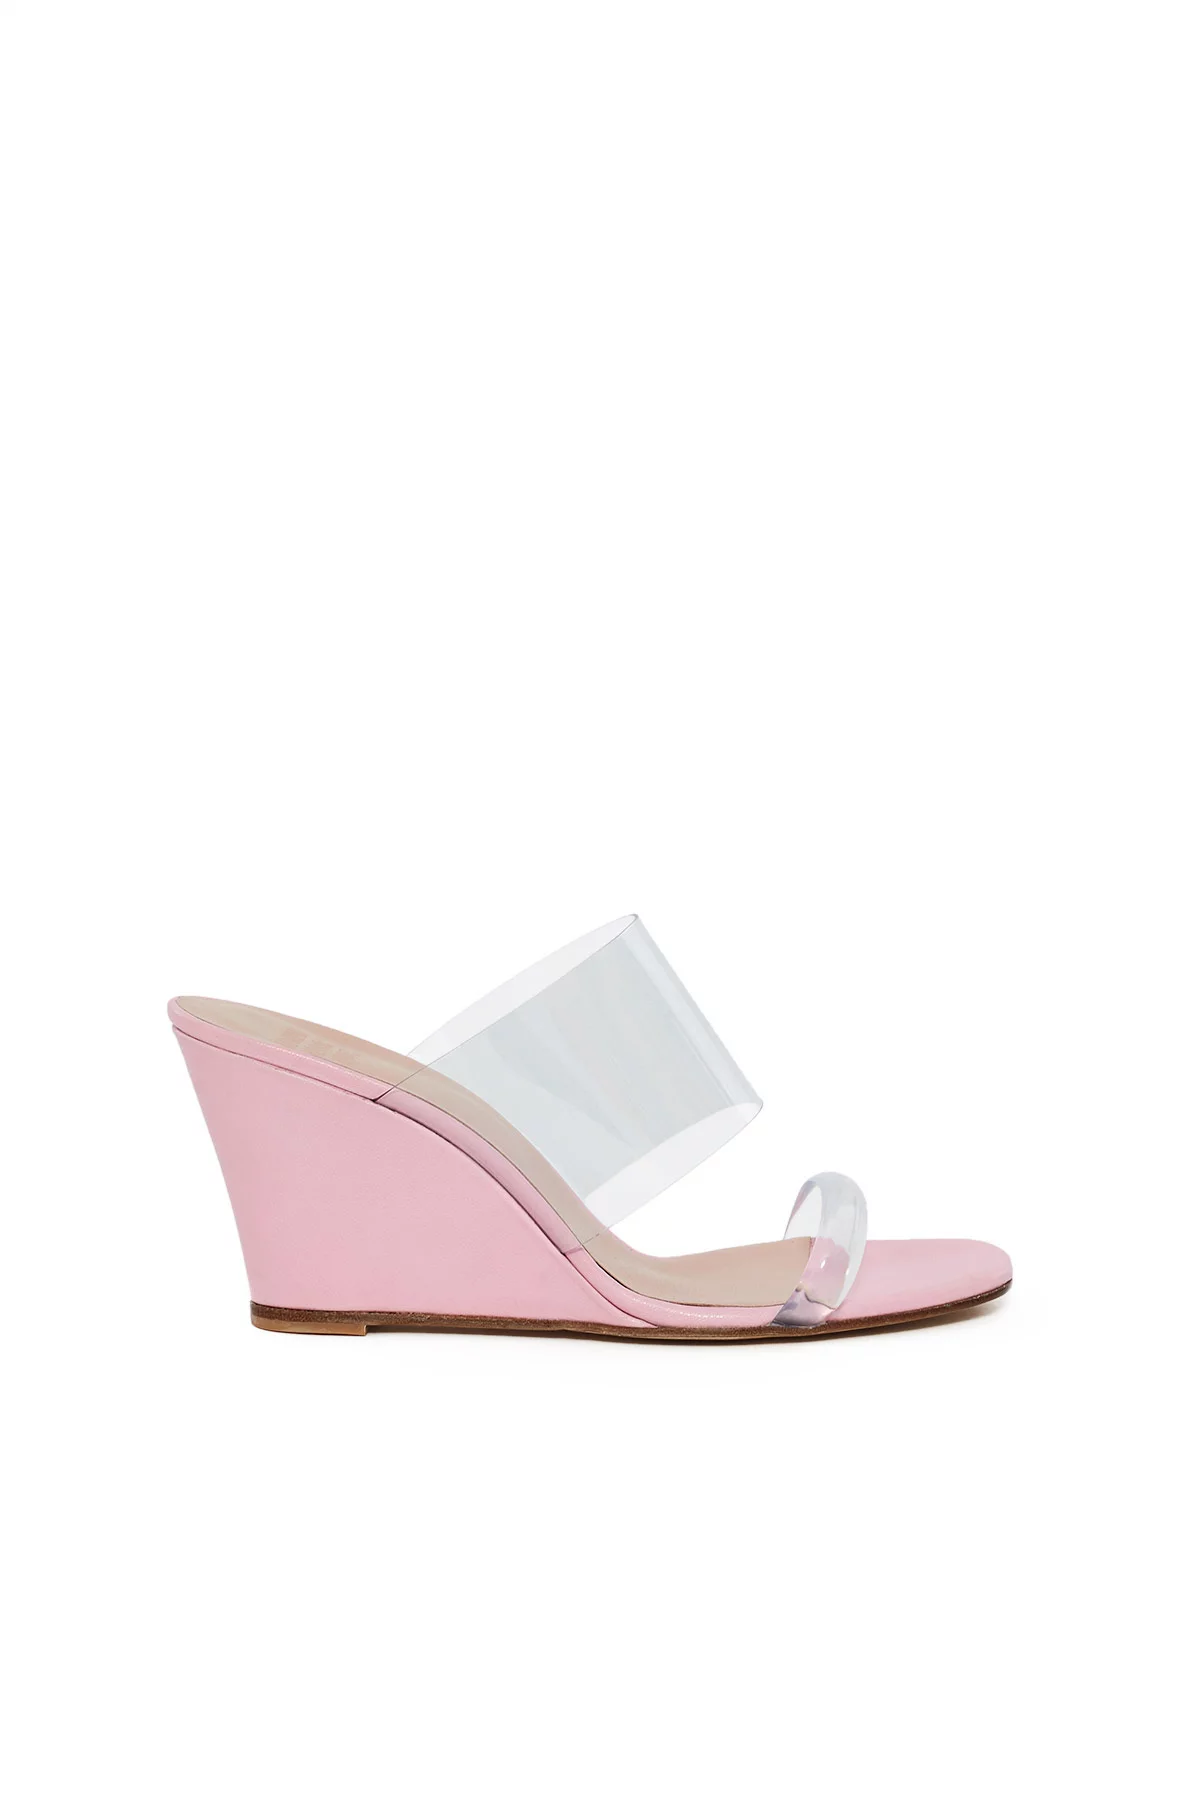 8d845eb8474 Olympia Wedge Sandals